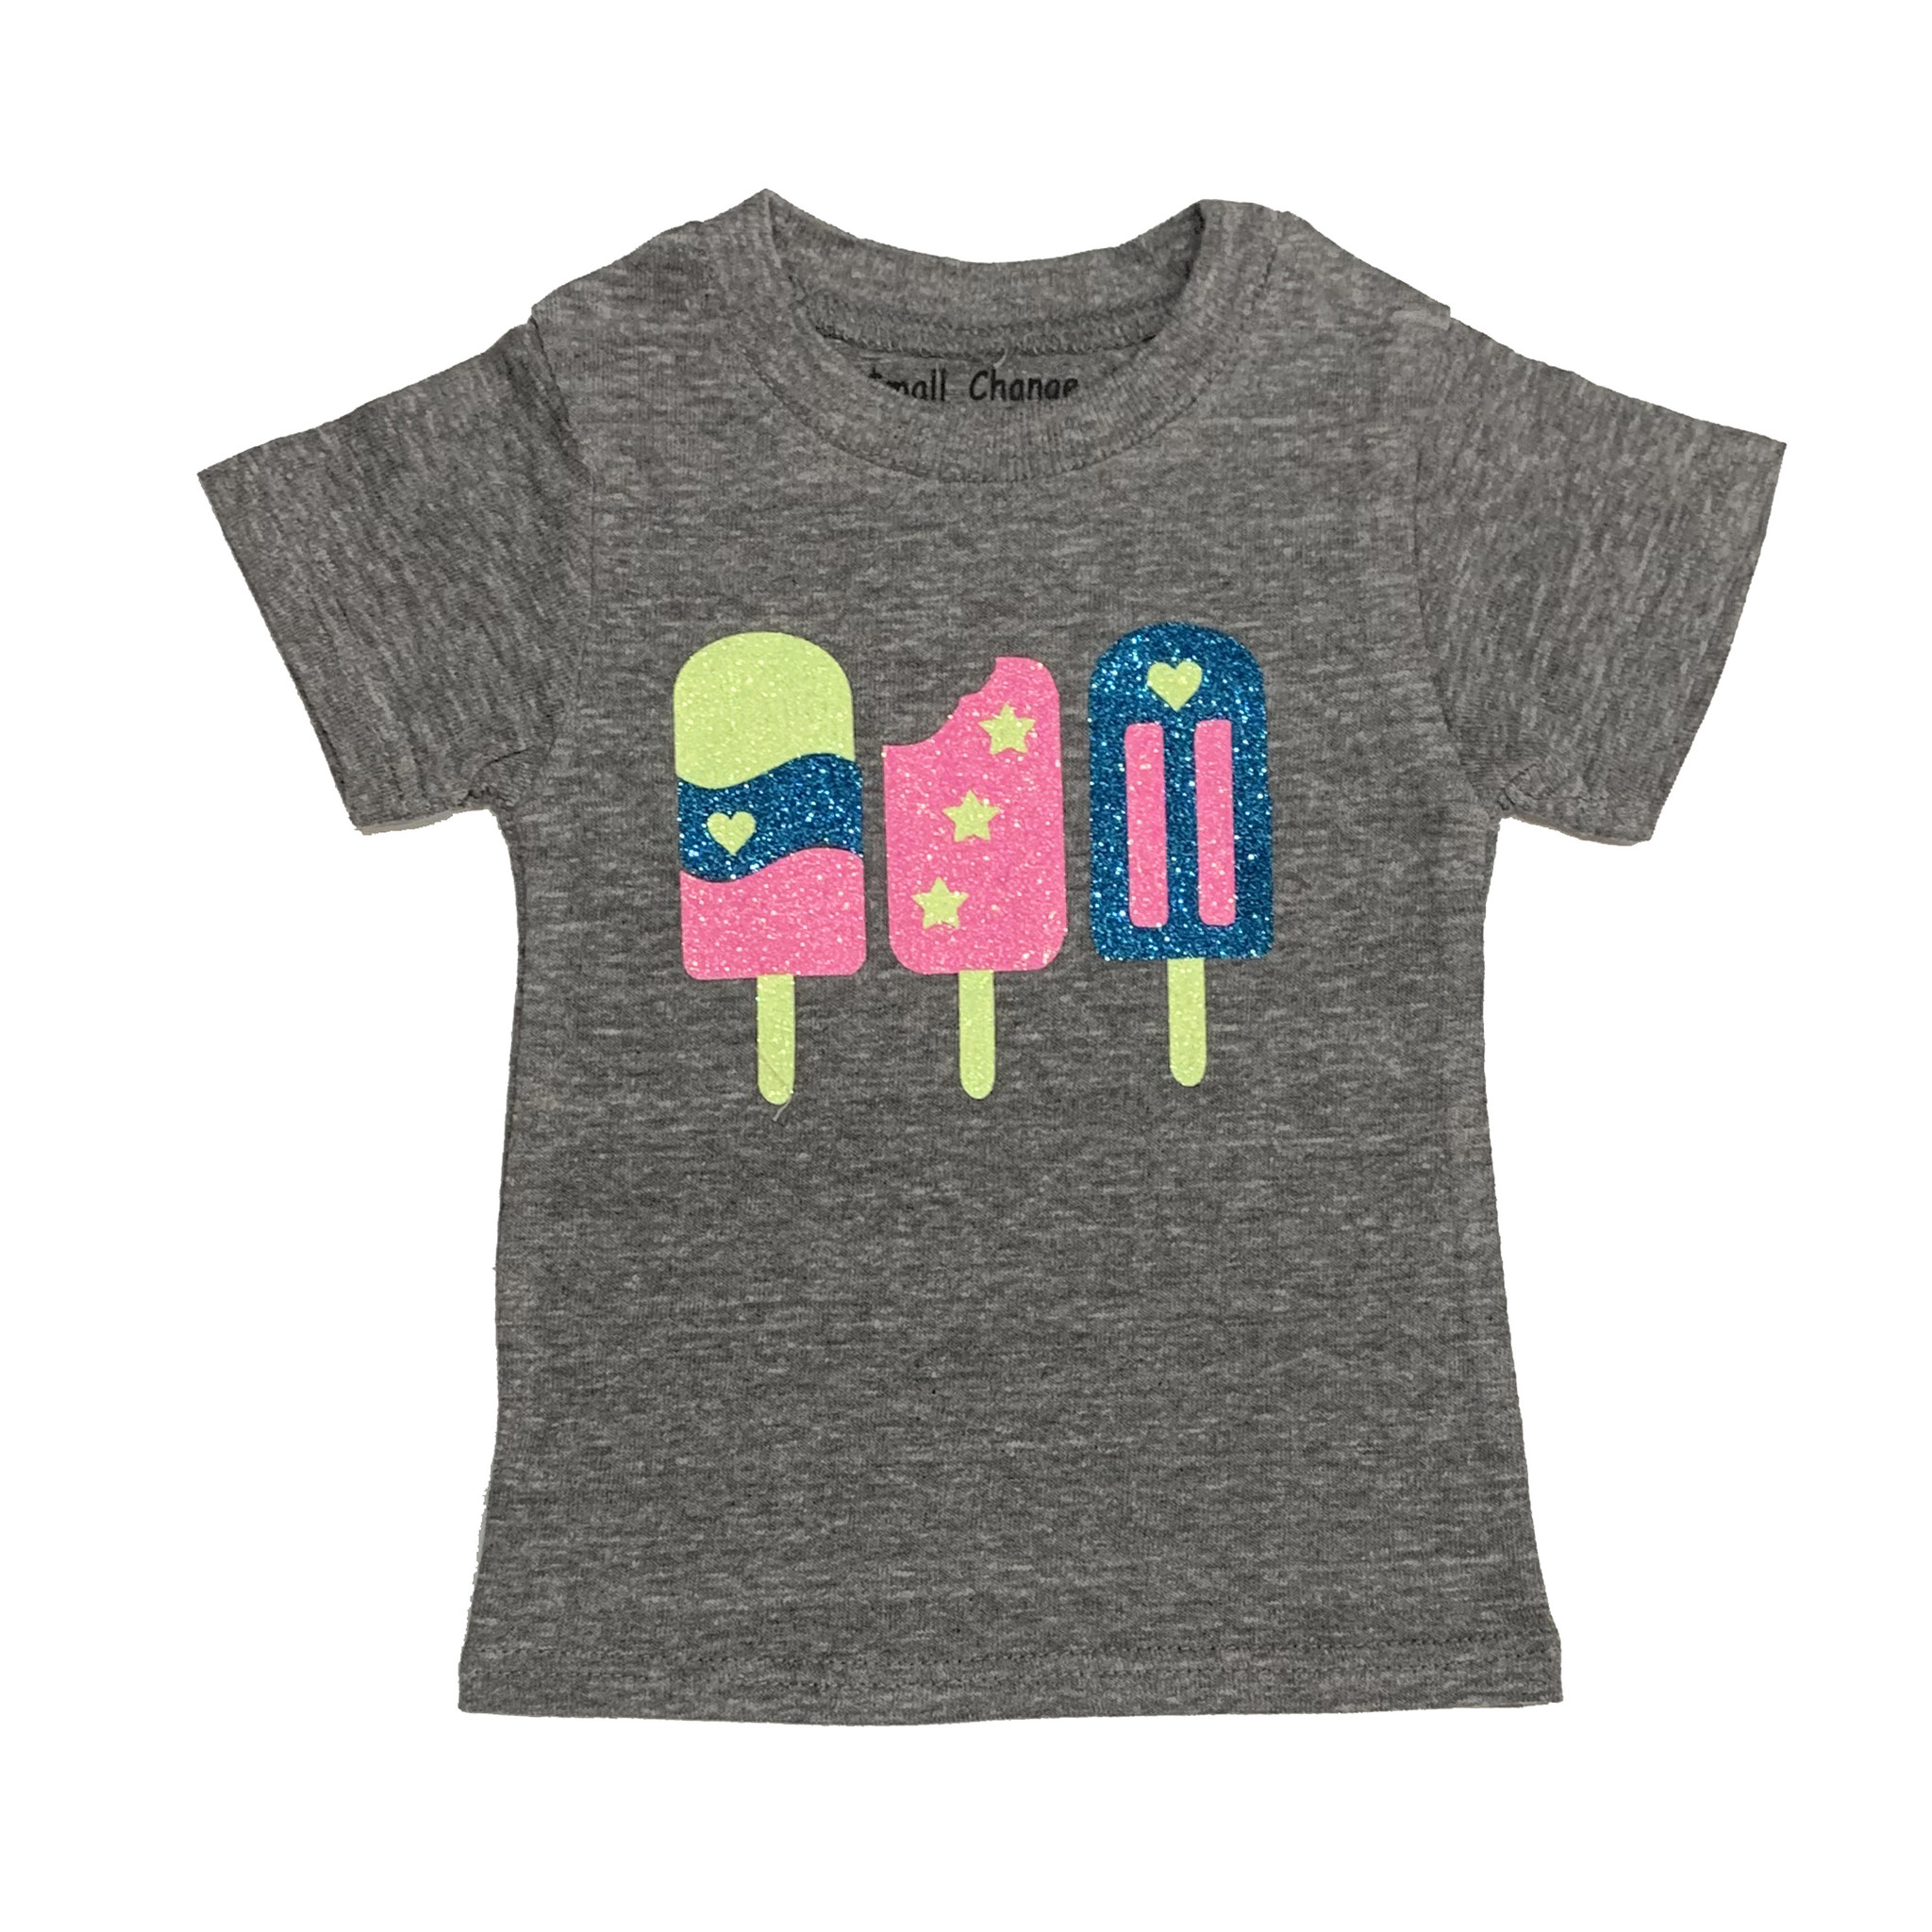 Small Change Grey Neon Ice Pops Tee